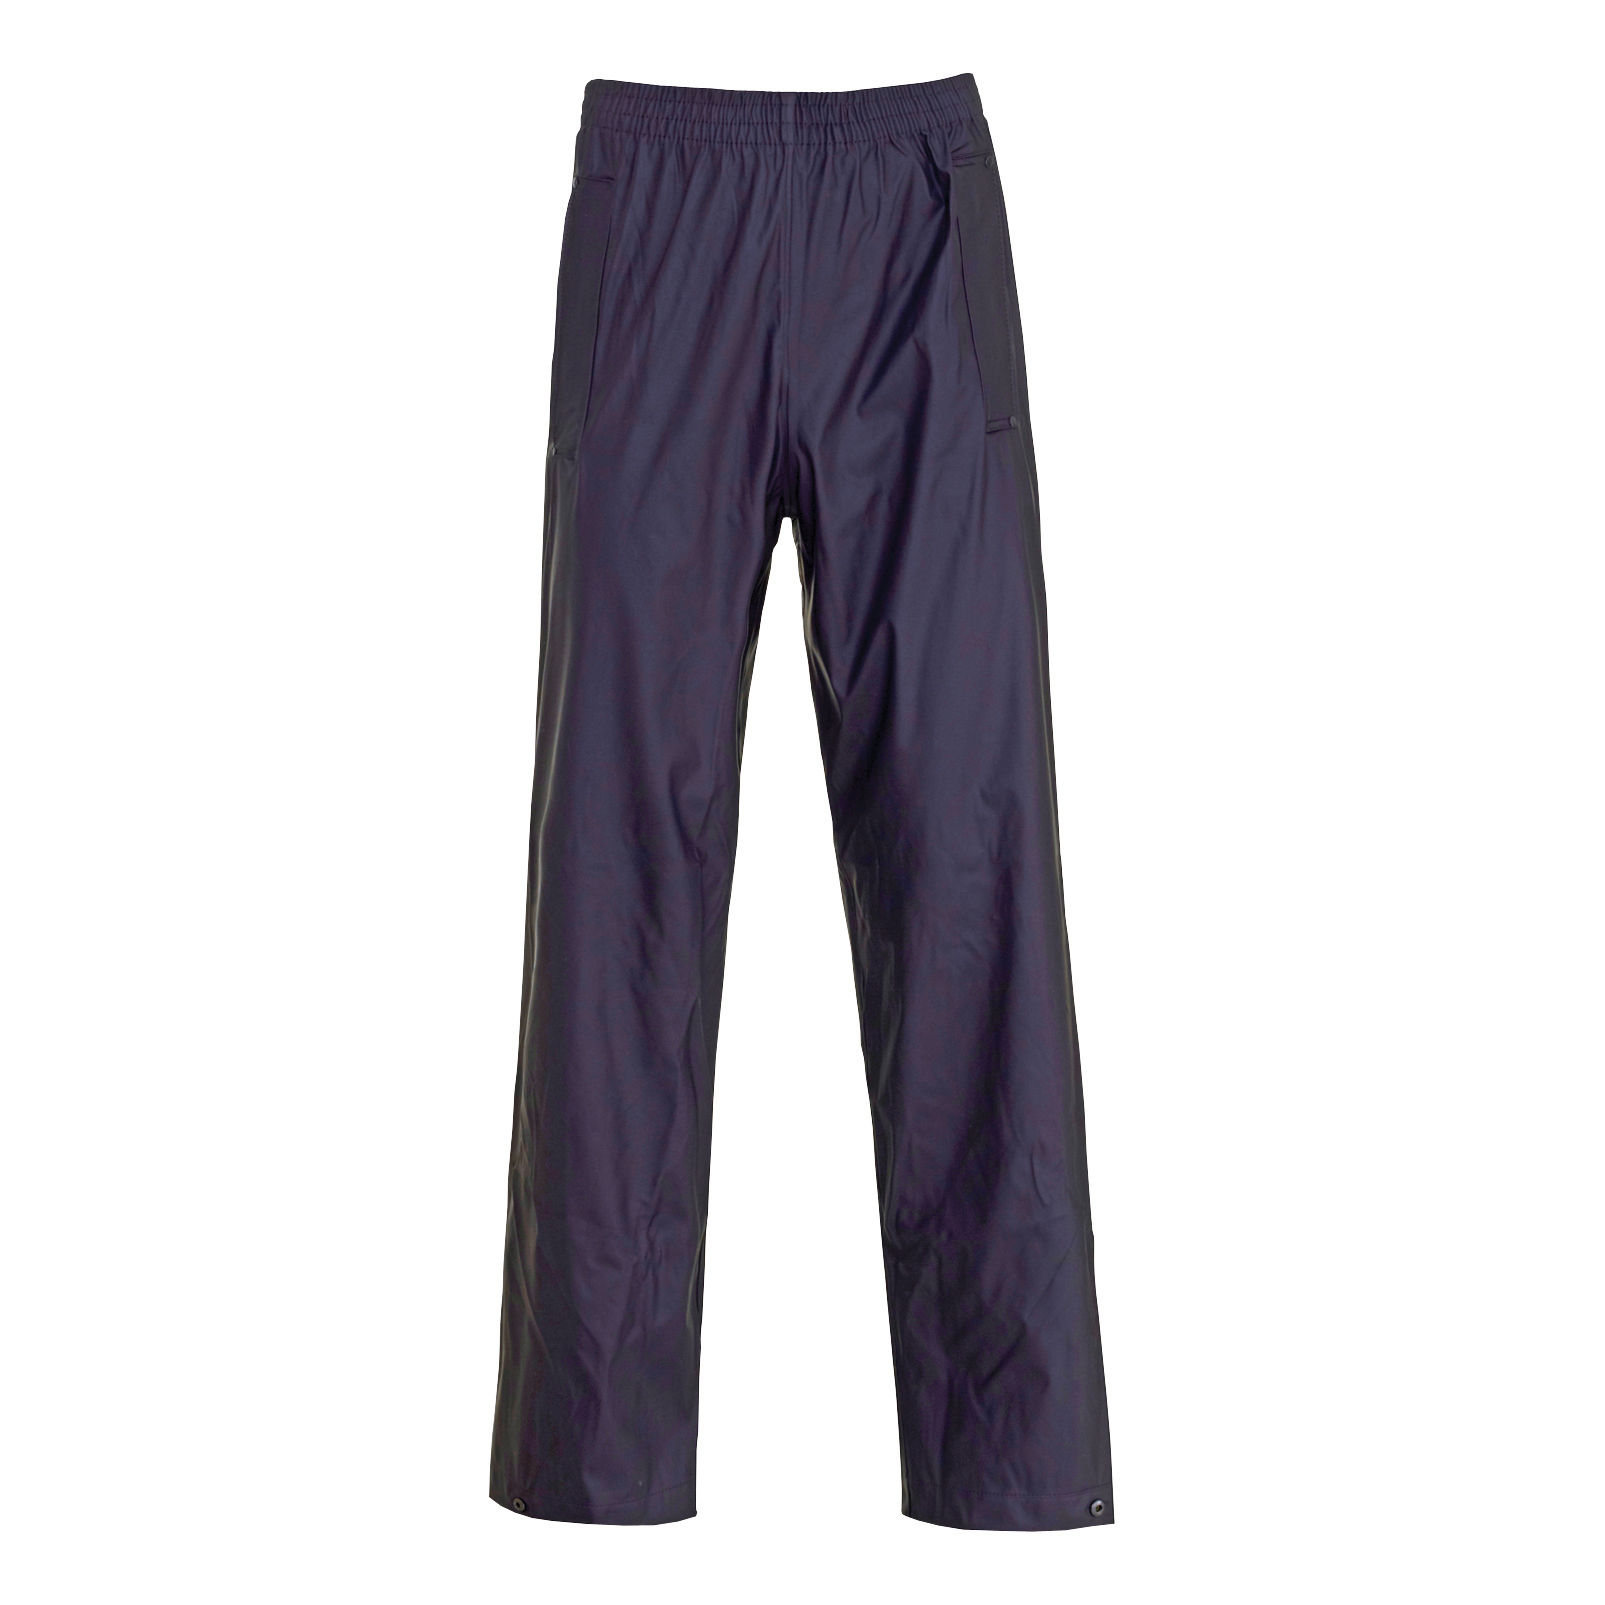 B-Dri Weatherproof Super Trousers Extra Large Navy Blue Ref SBDTNXL Approx 3 Day Leadtime